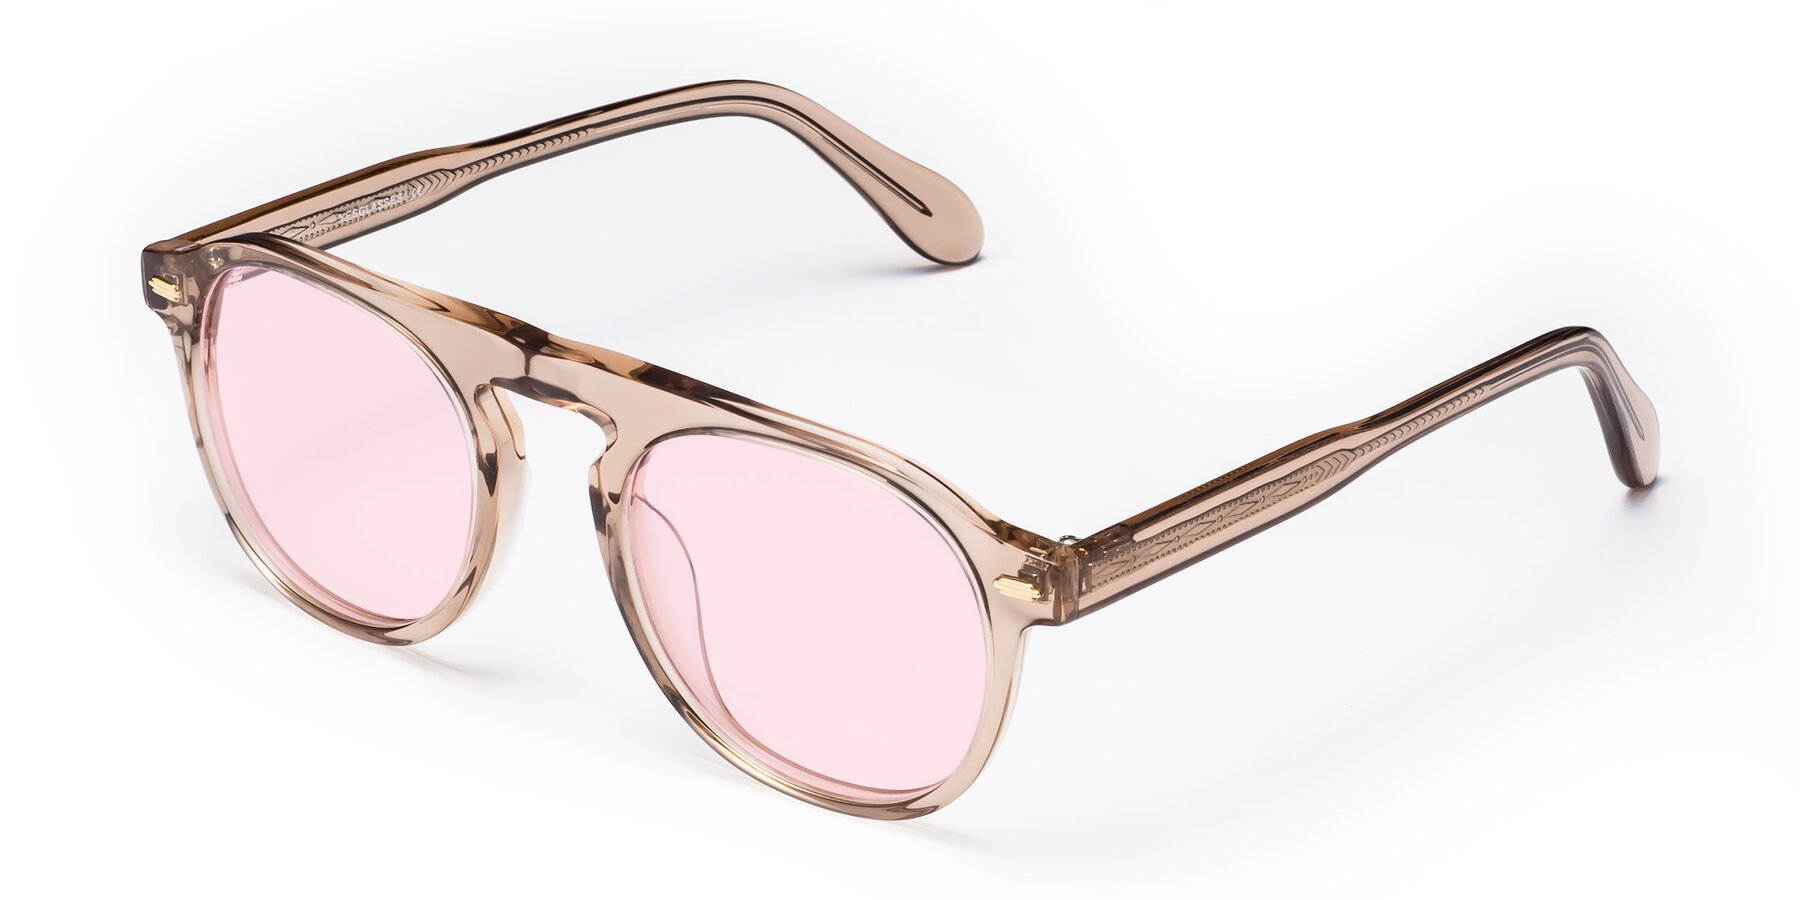 Angle of Mufasa in light Brown with Light Pink Tinted Lenses